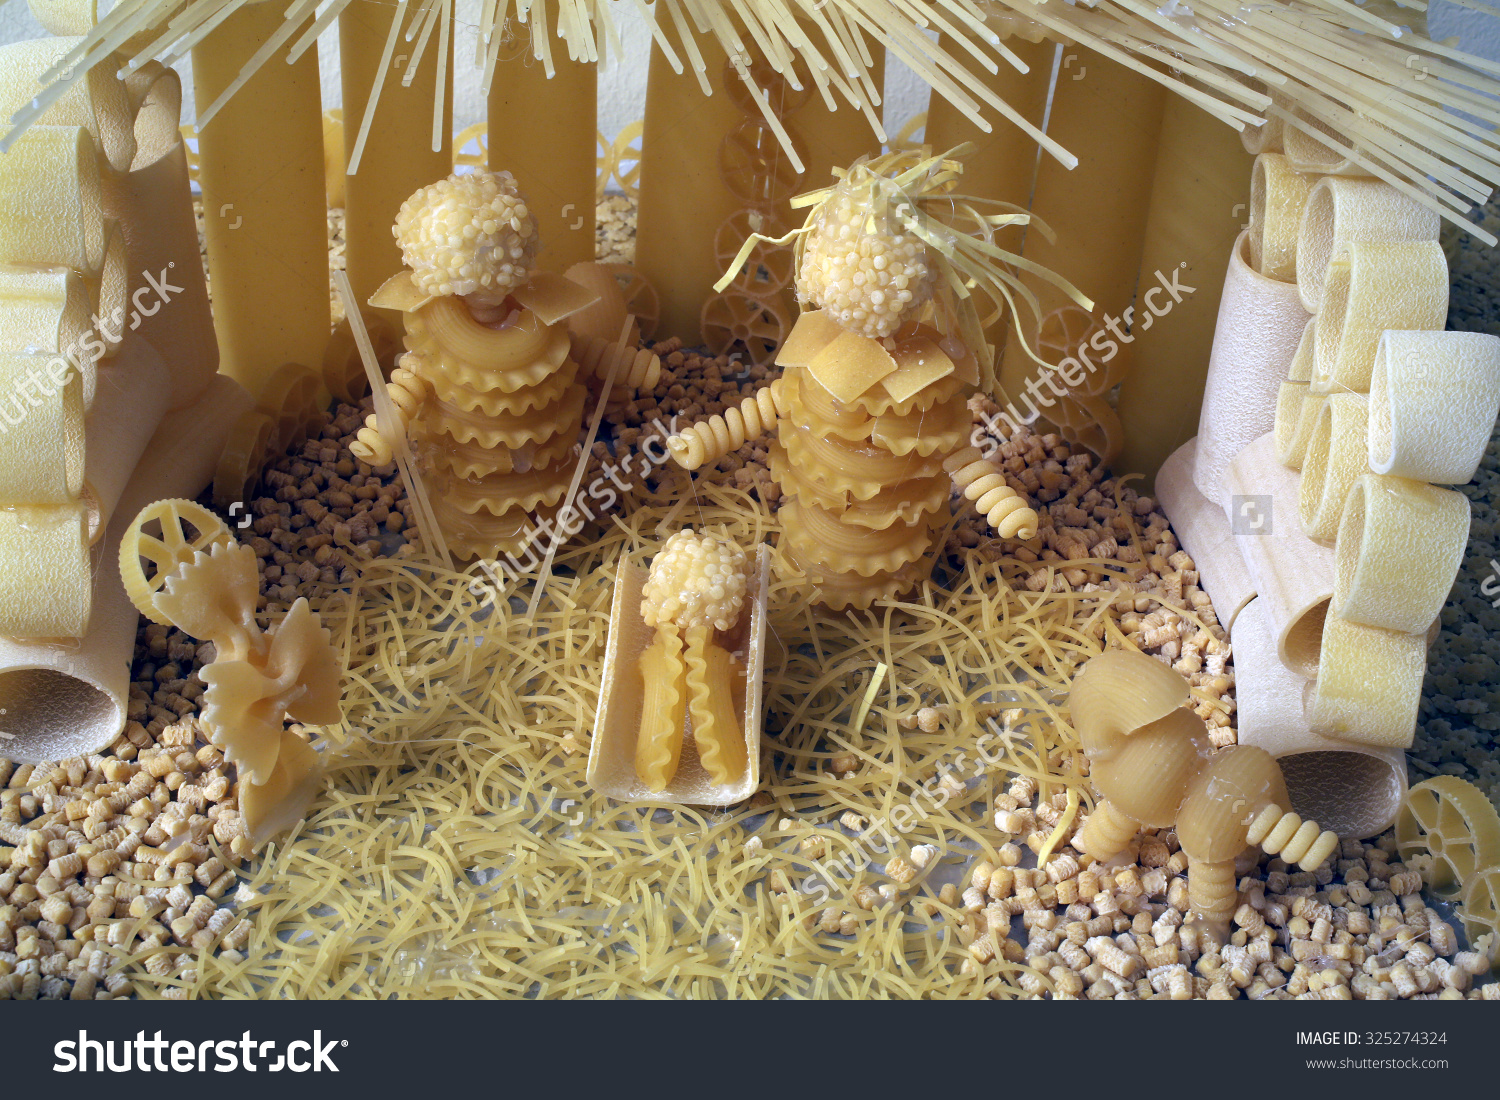 stock-photo-zagreb-croatia-december-exhibition-of-christmas-mangers-at-the-monastery-of-the-sisters-325274324